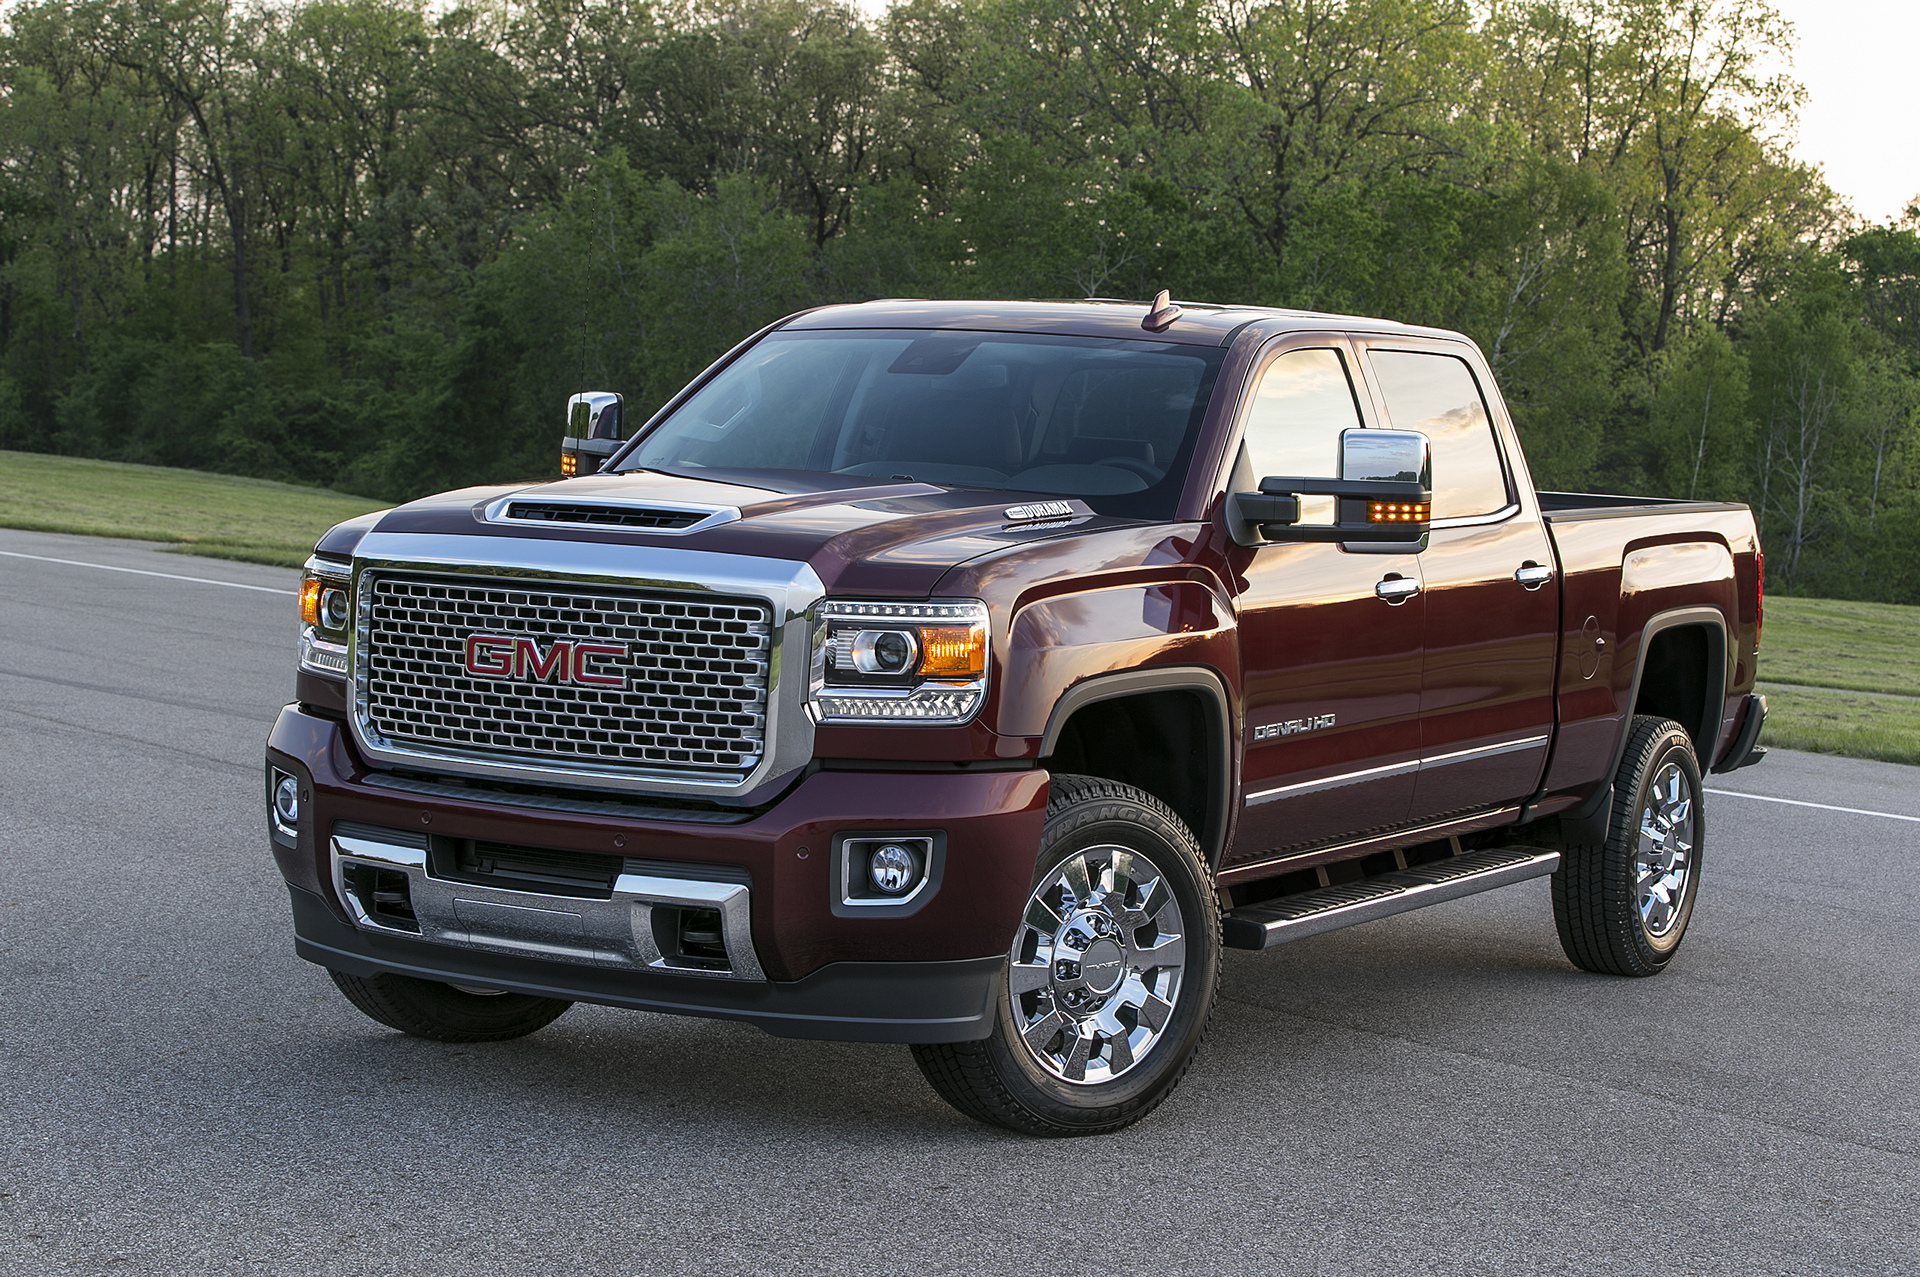 first photos of the 2017 sierra denali 2500hd carrrs auto portal. Black Bedroom Furniture Sets. Home Design Ideas